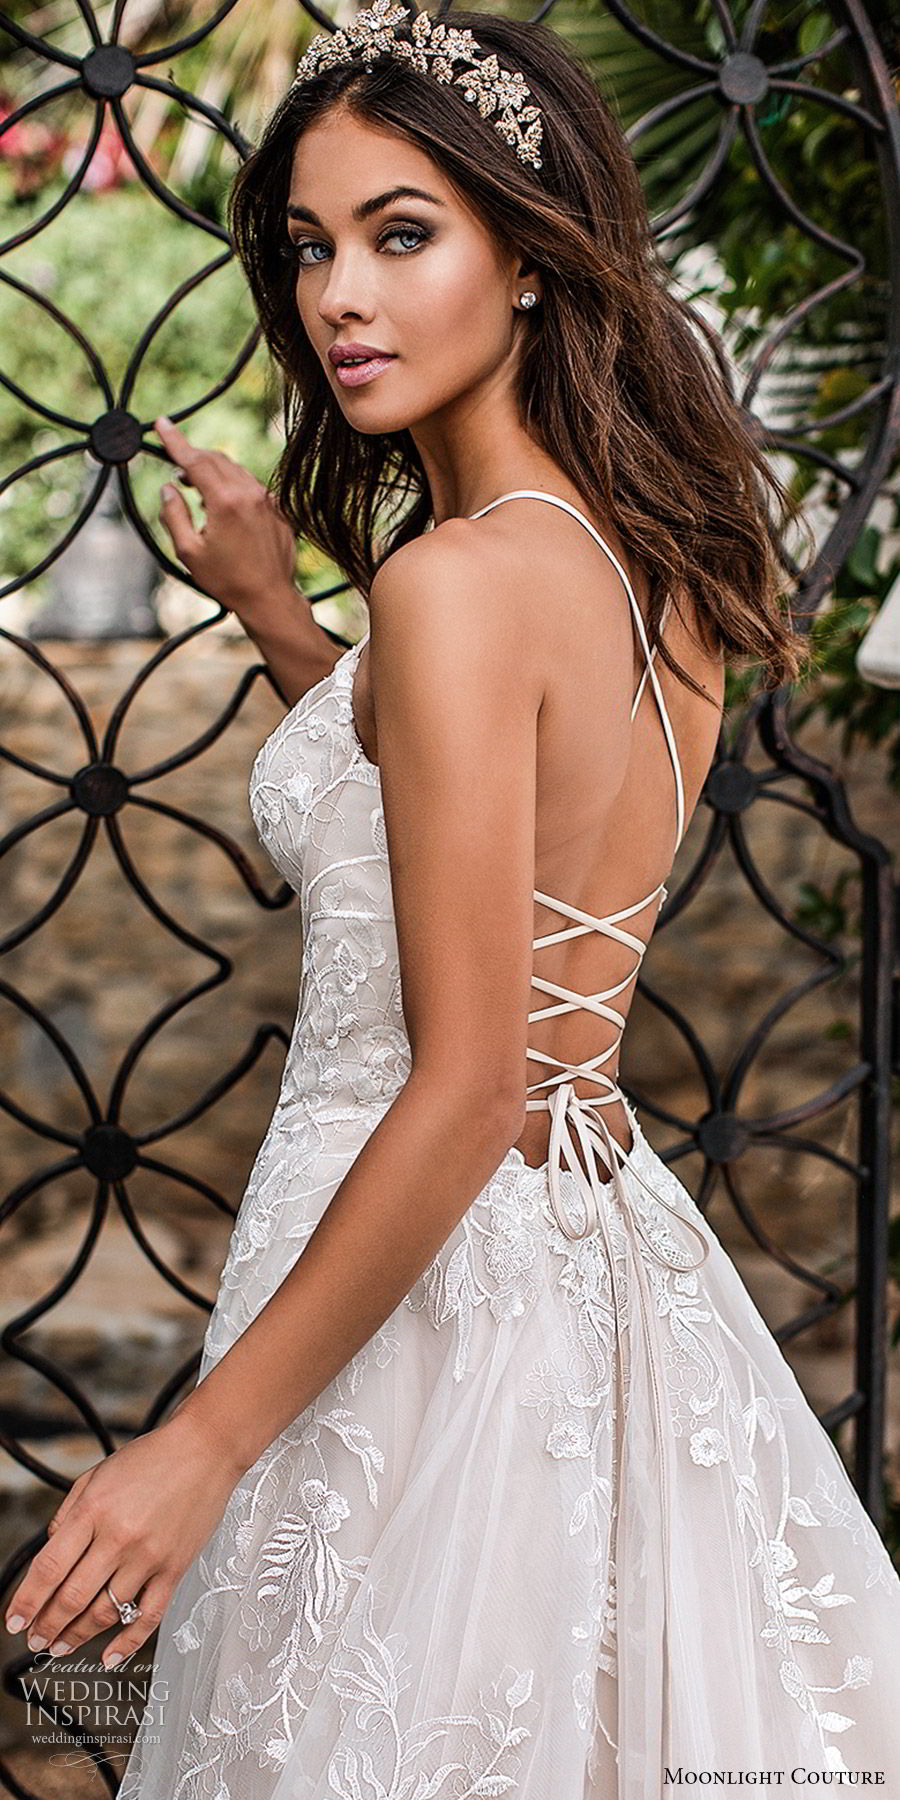 moonlight couture fall 2019 bridal sleeveless thin straps split sweetheart neckline fully embellished a line ball gown wedding dress (9) romantic princess chapel train open back zbv